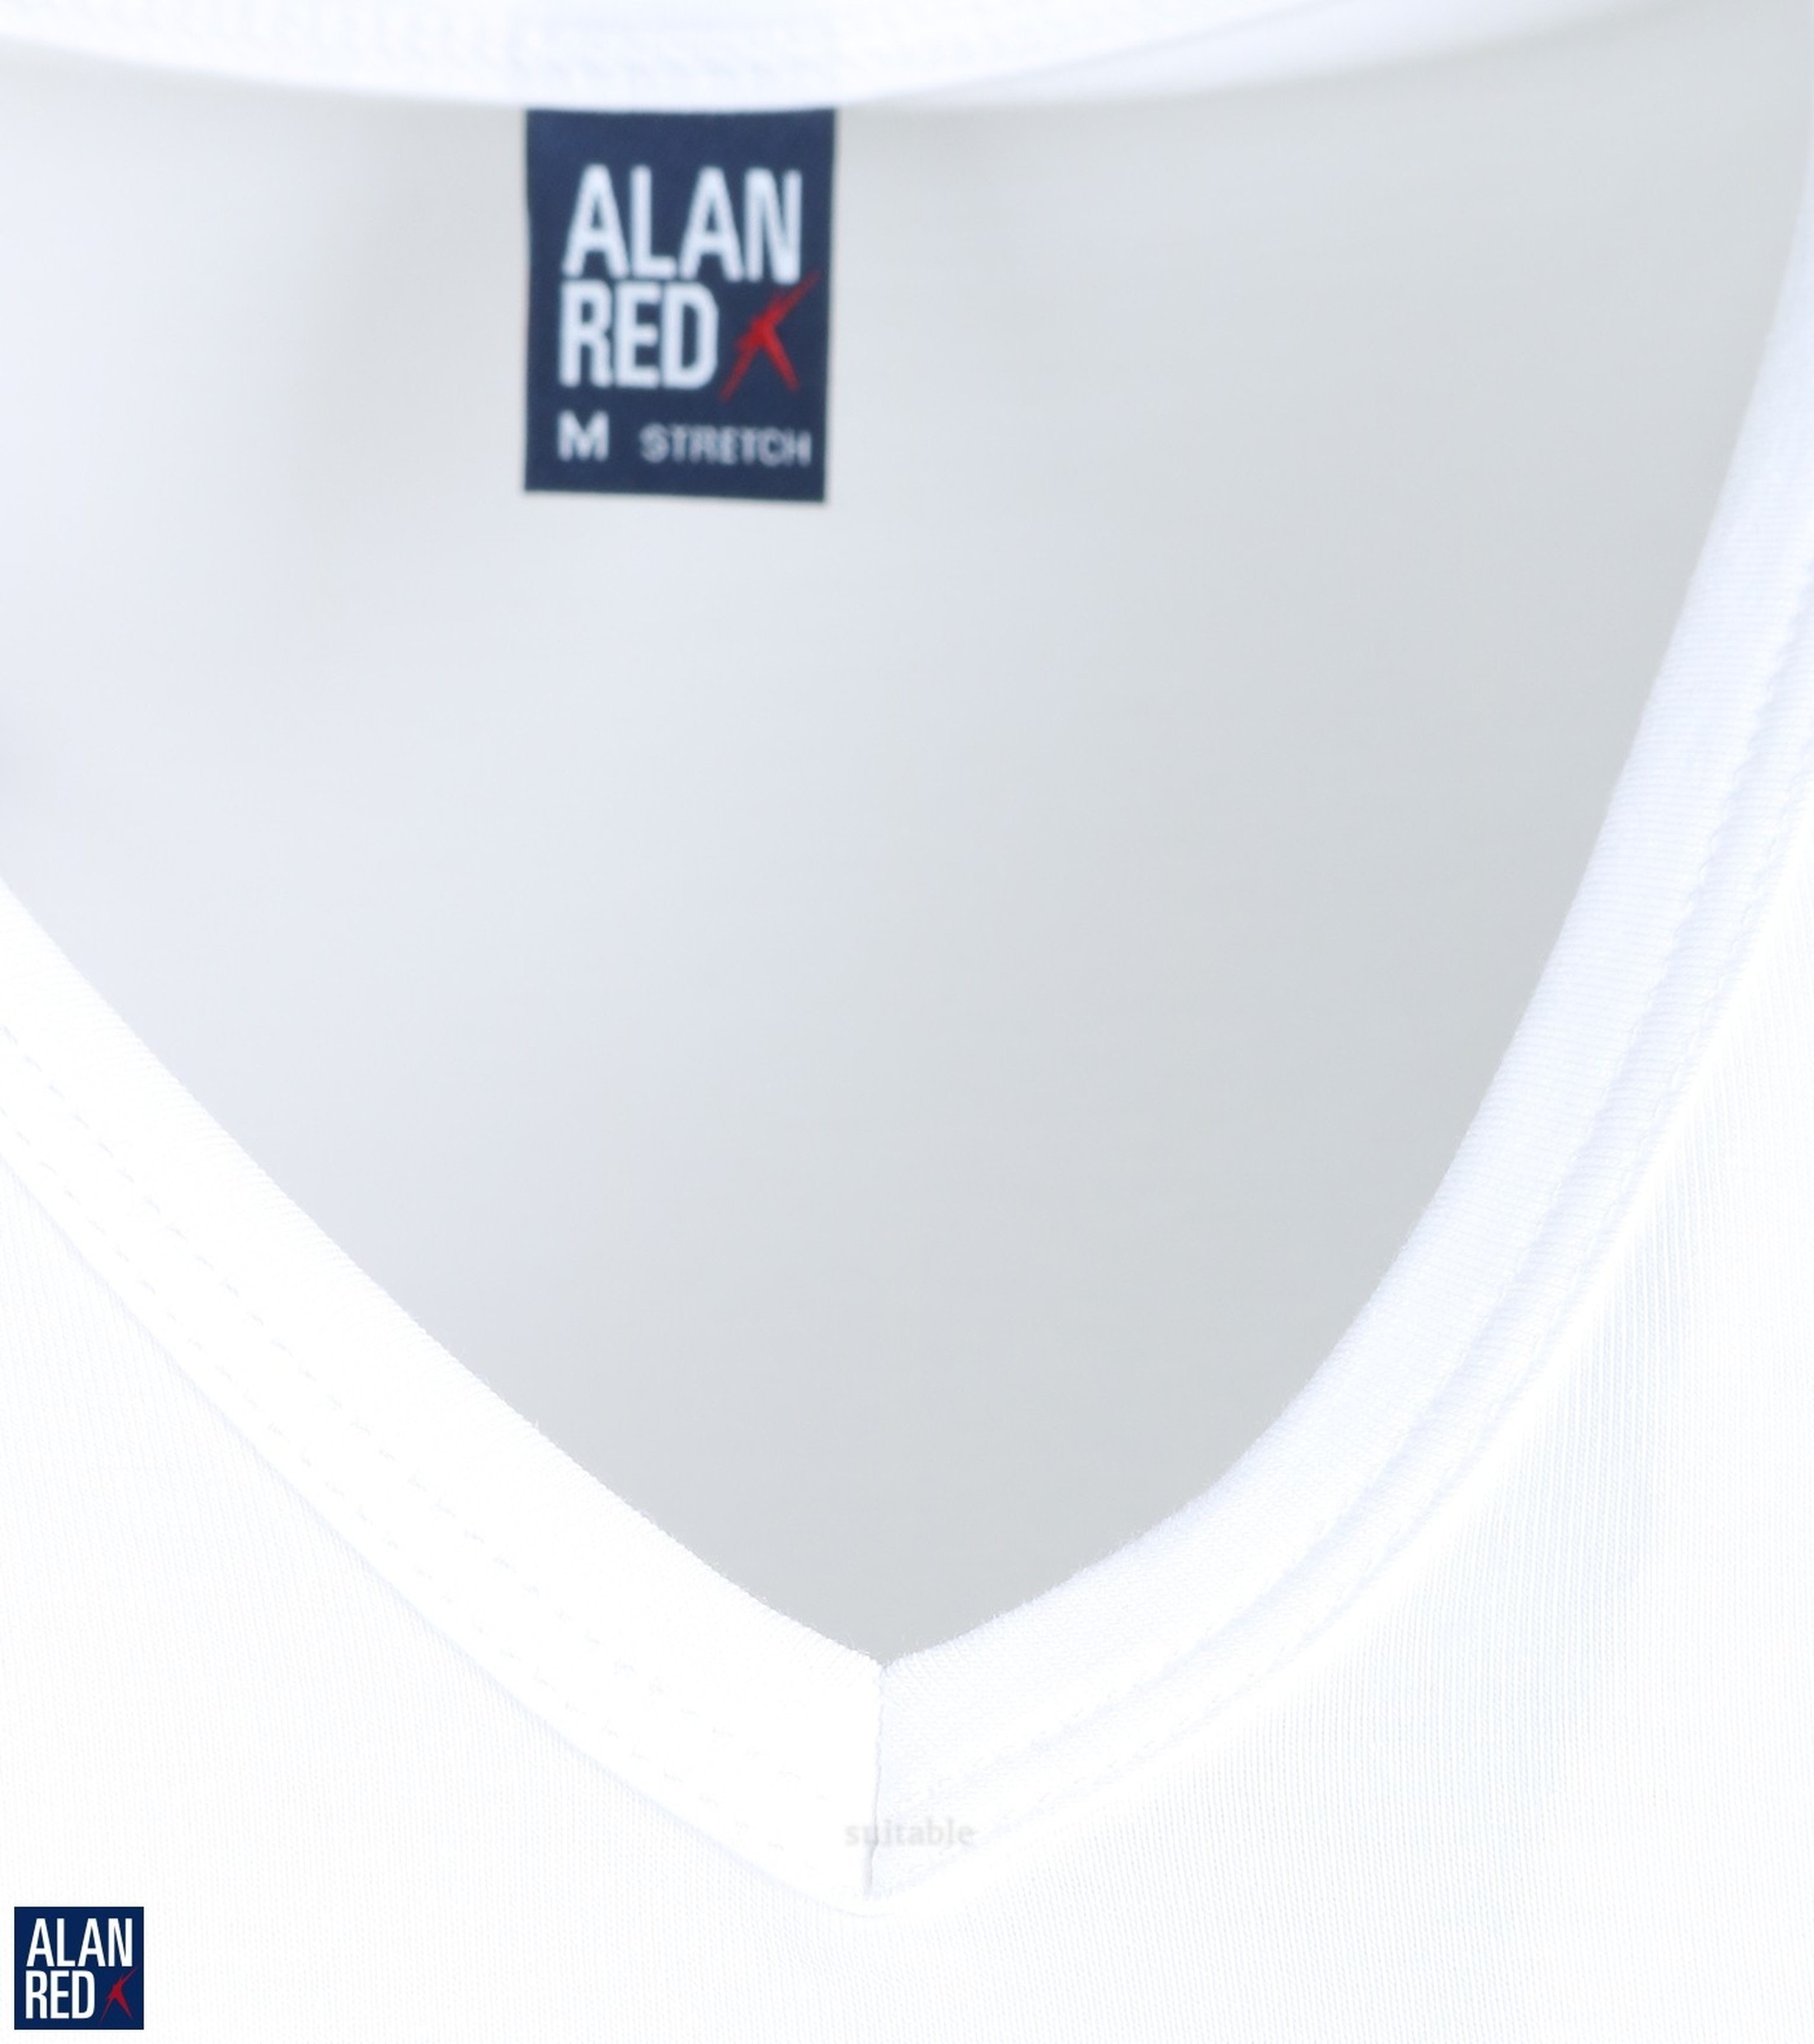 Alan Red Oklahoma T-shirt Stretch Wit (2pack) foto 2